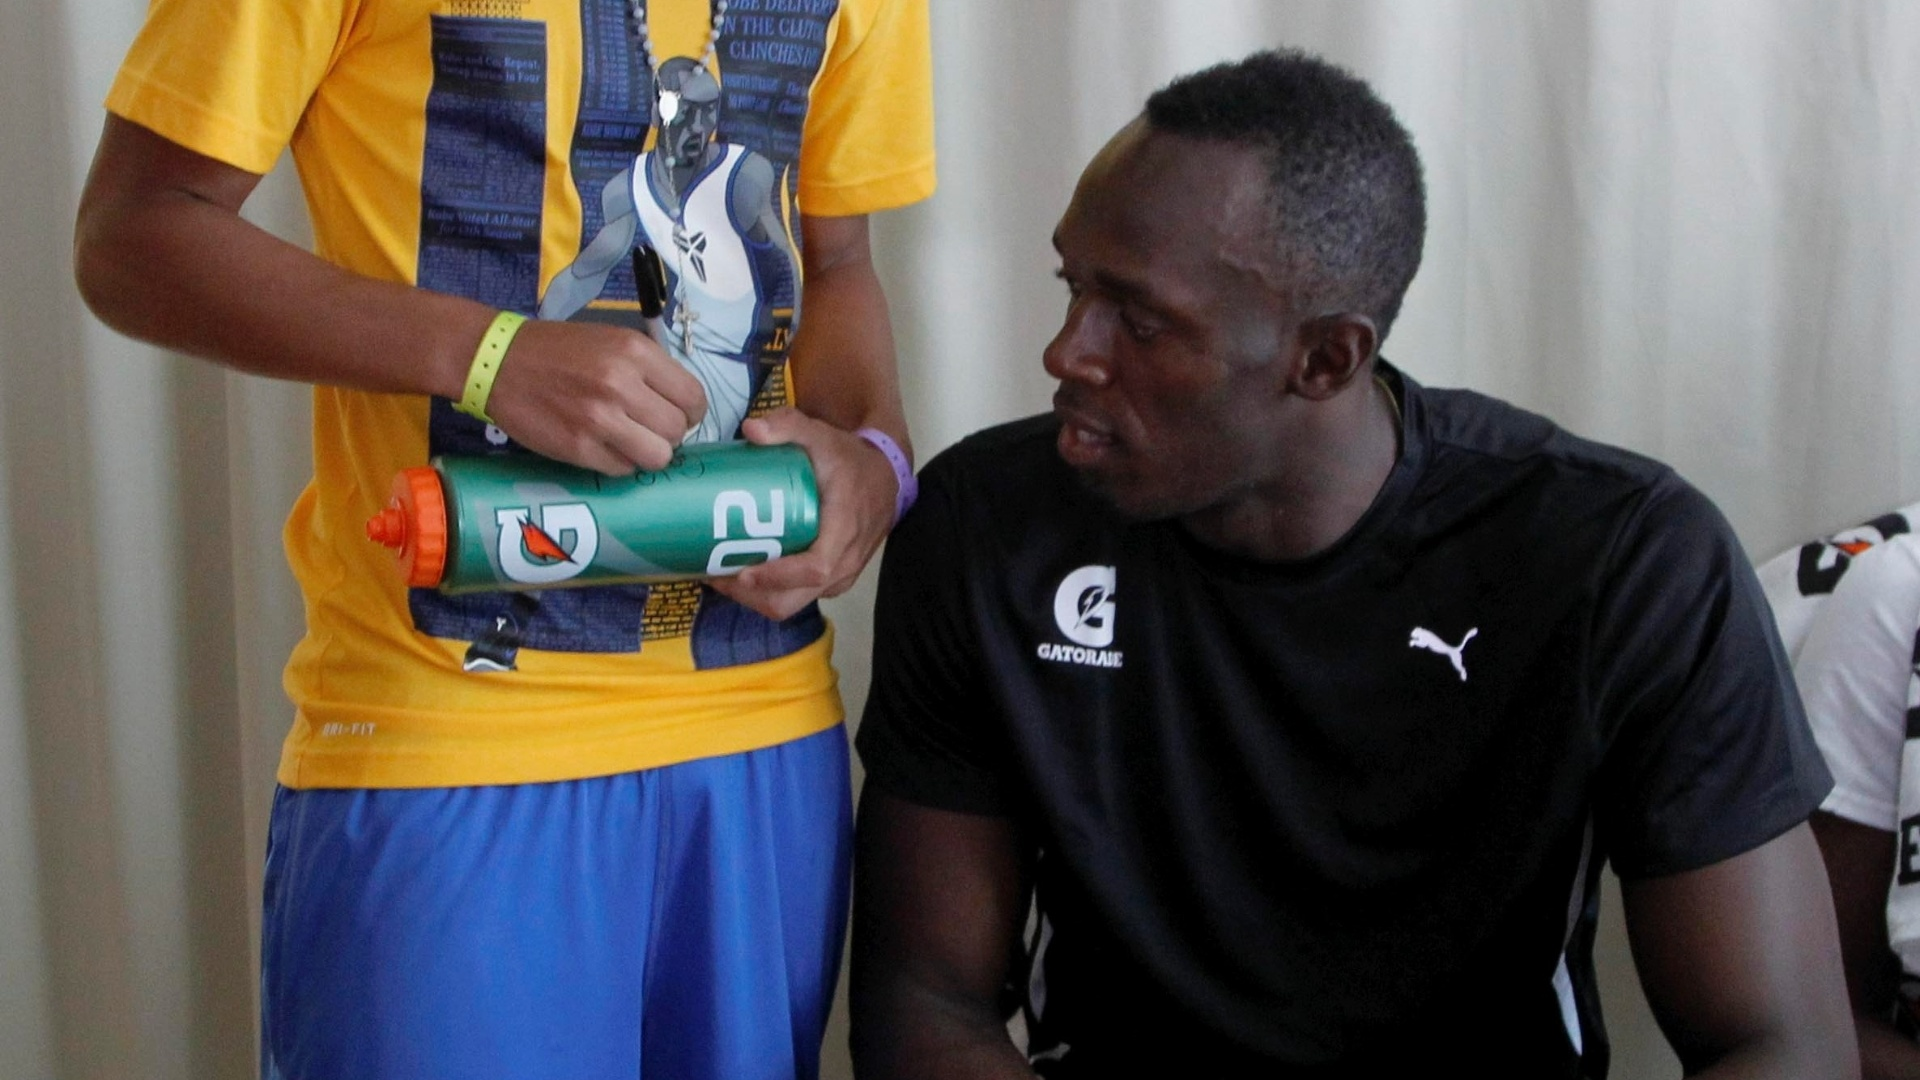 30.mar.2013 - Usain Bolt ganha autgrafo de Gabigol, jogador da base do Santos, depois de jogarem juntos futevlei em Copacabana: 